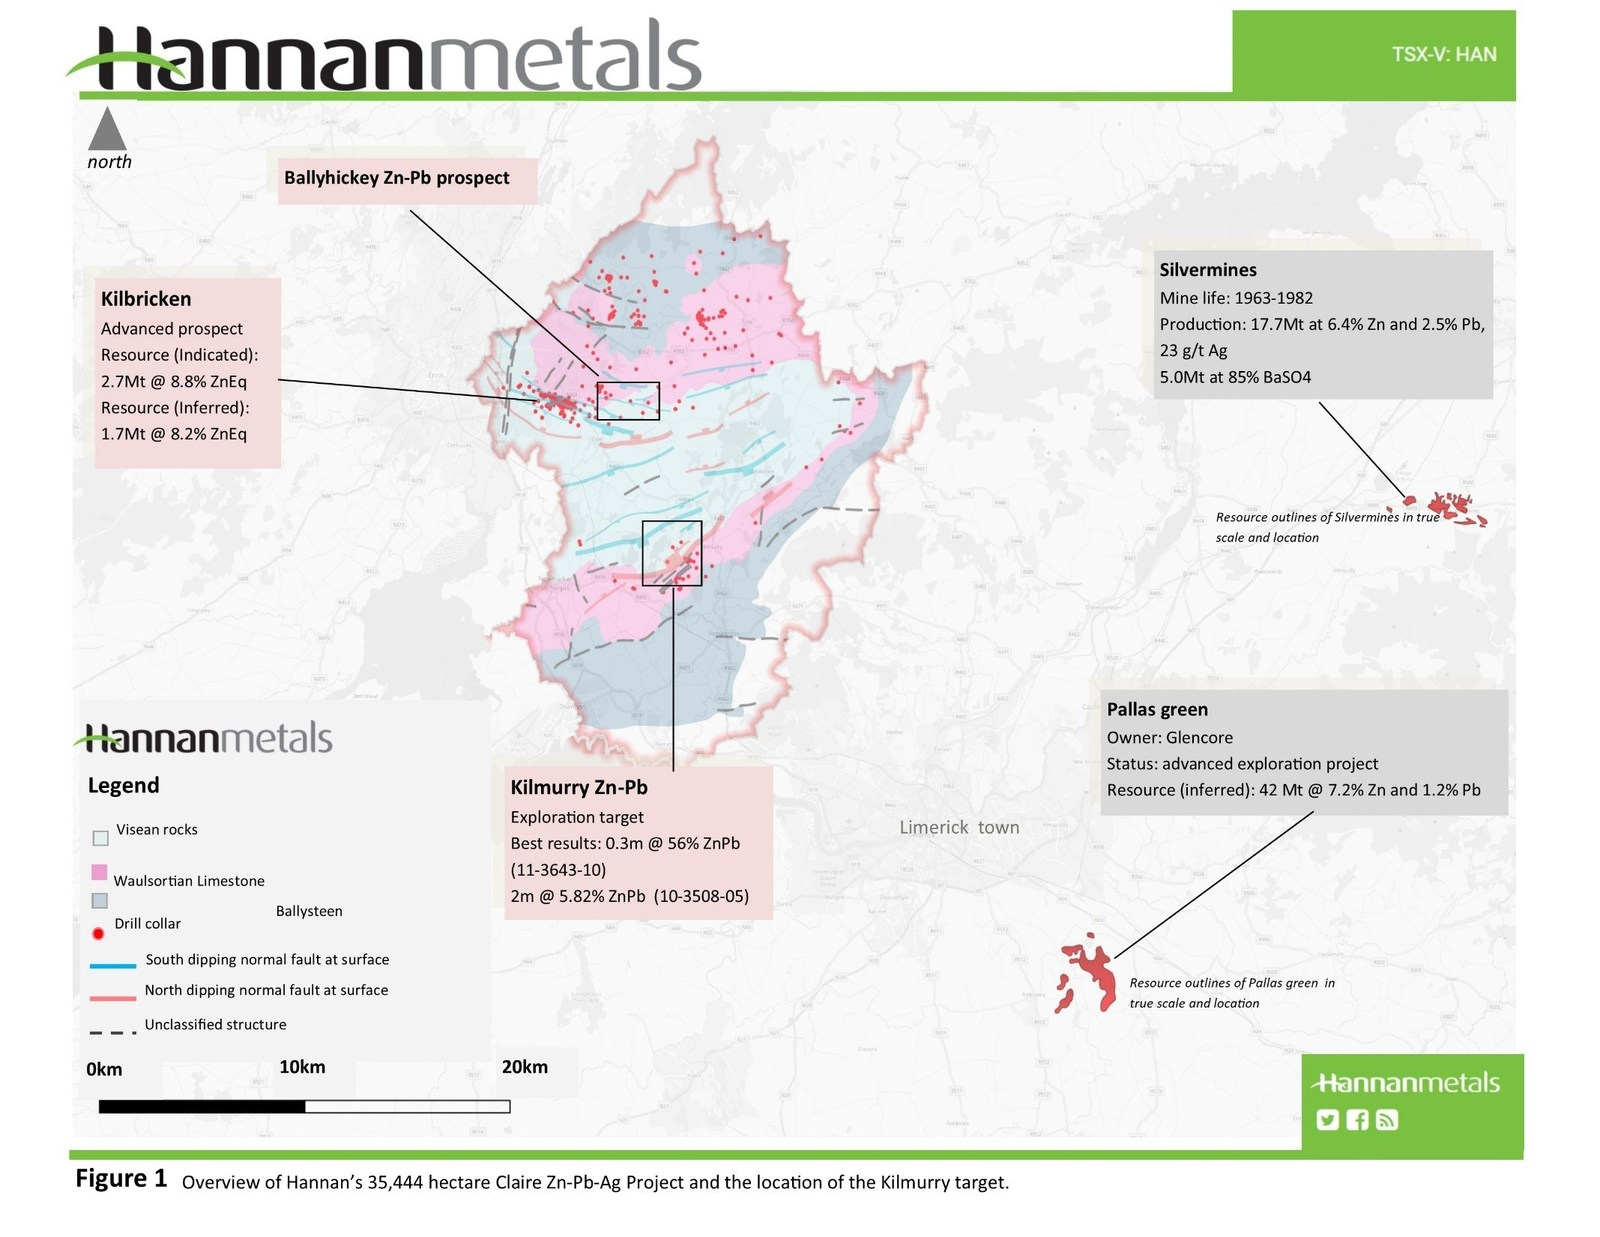 Figure 1 - Overview of Hannan's 35,444 hectare Claire Zn-Pb-Ag Project and the location of the Kilmurry target.